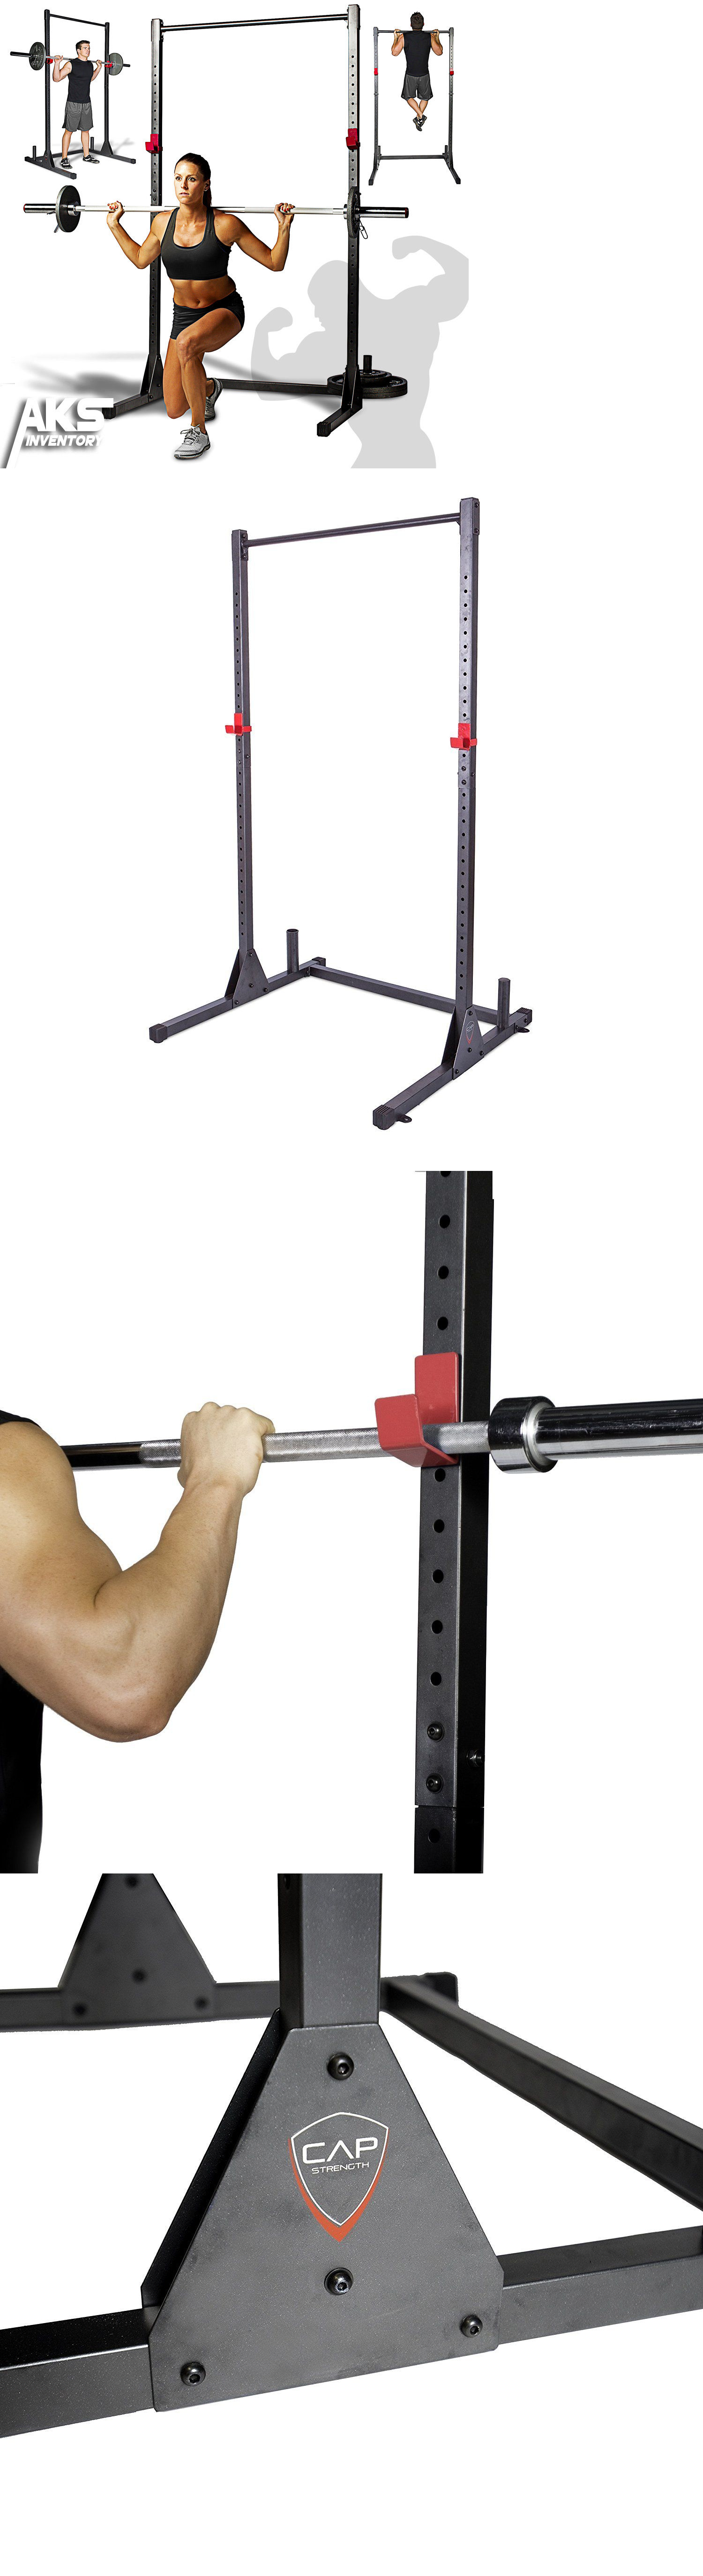 fitness rack crossfit of three end own step build your is power a equipment what